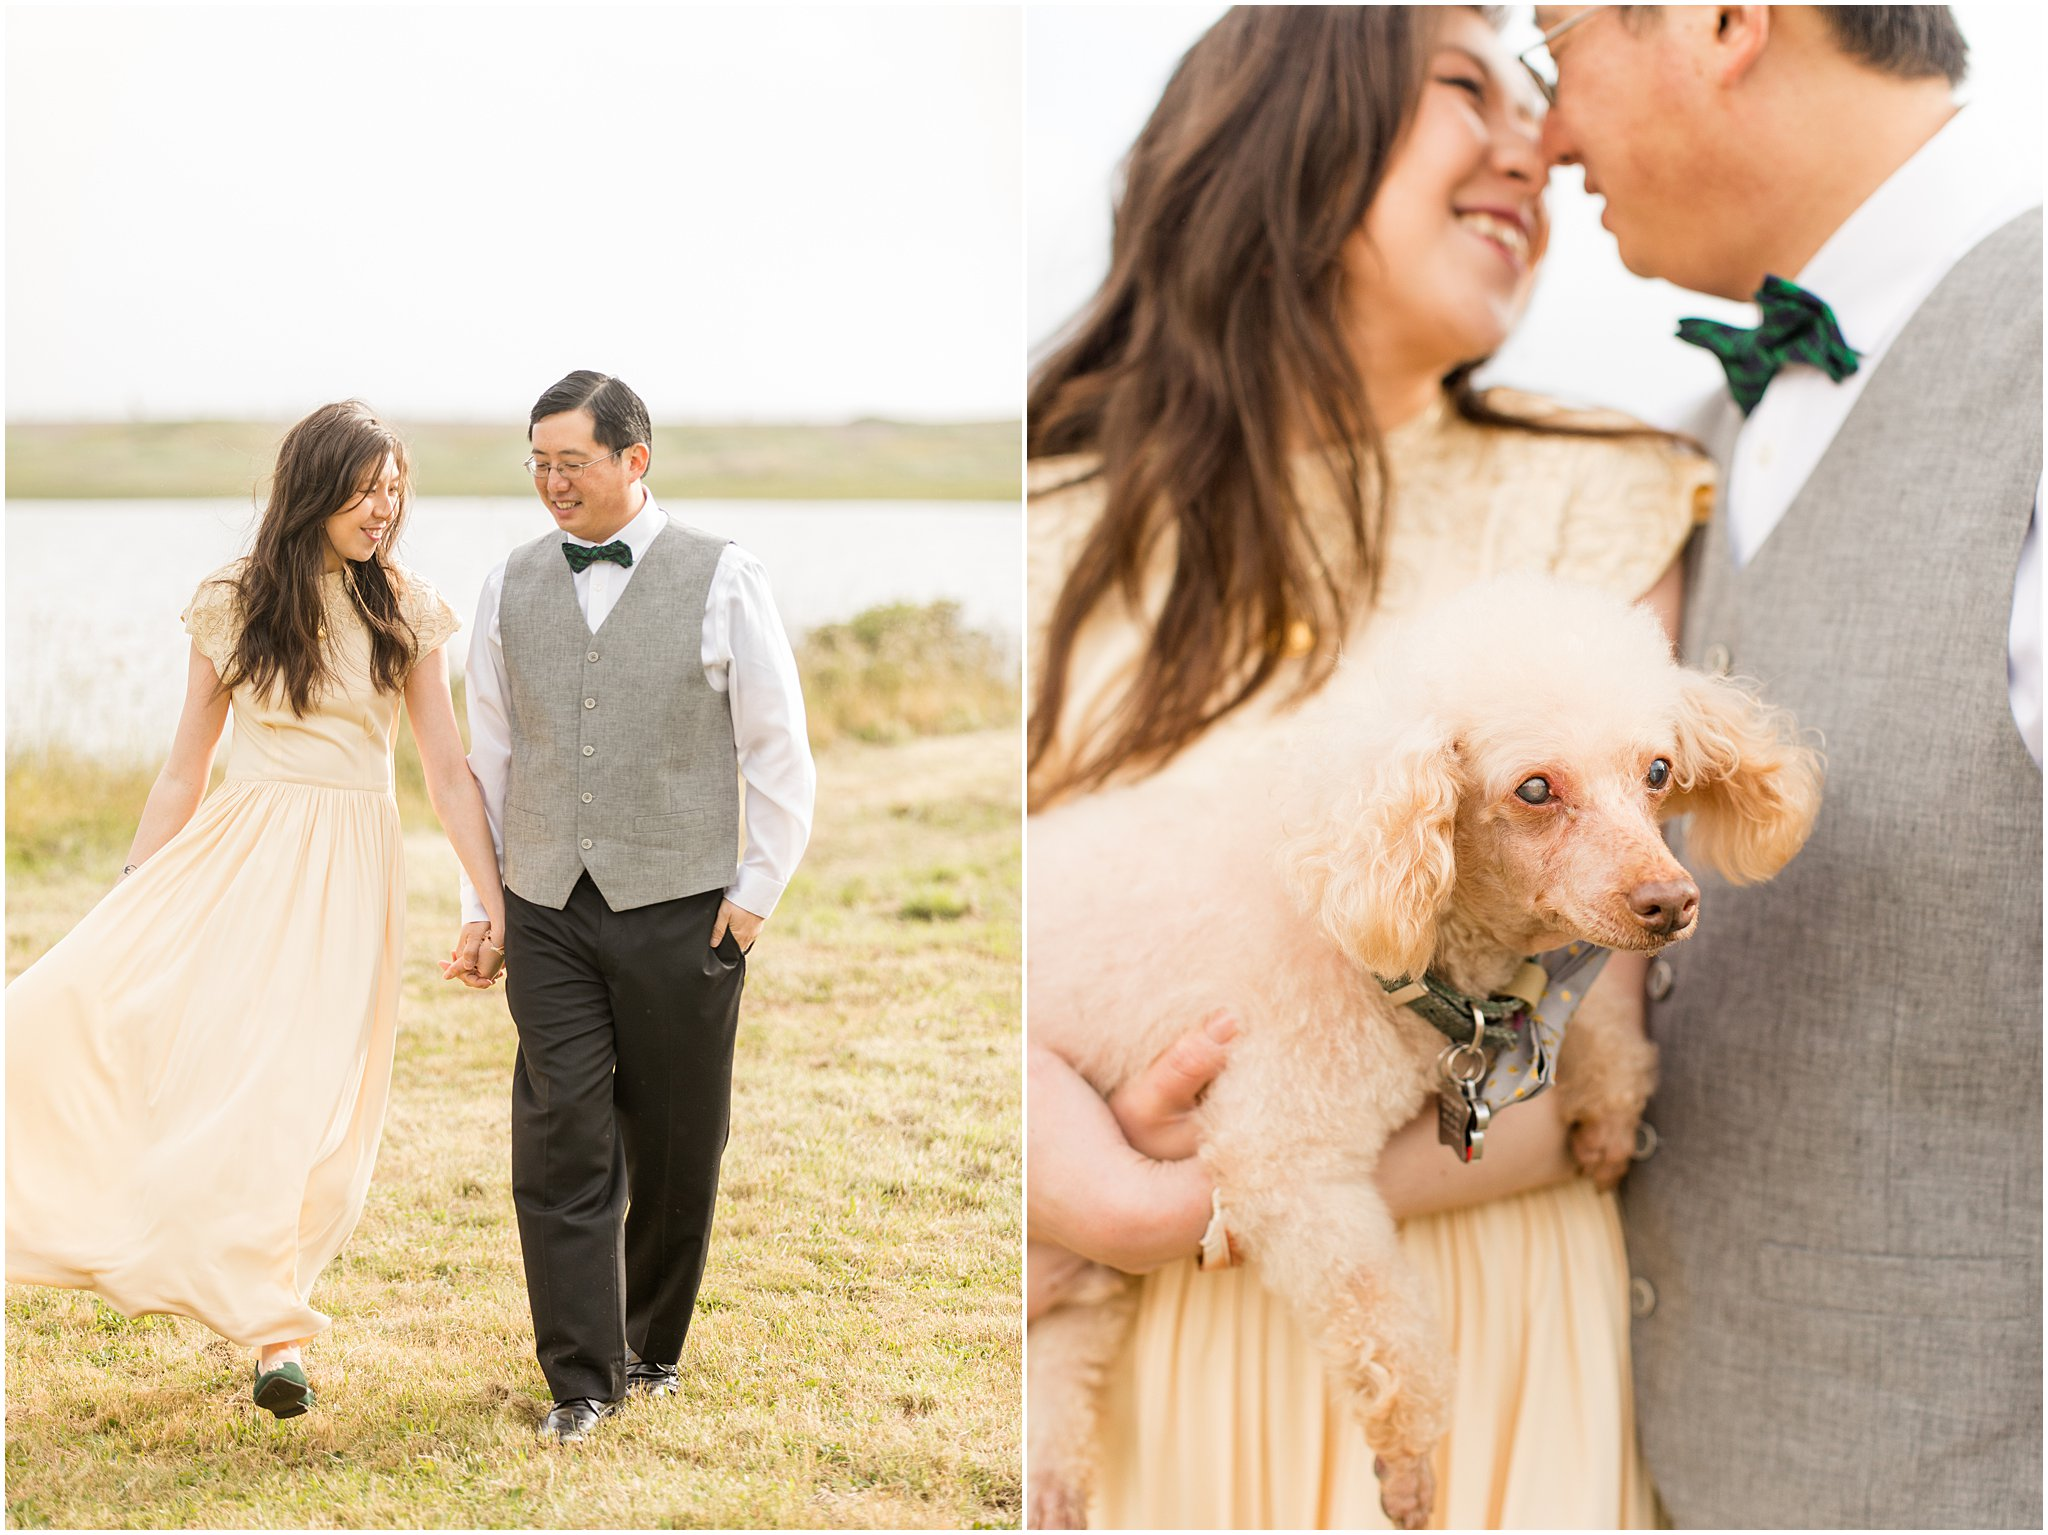 2019 marin headlands san francisco engagement session bay area wedding photographer_0010.jpg